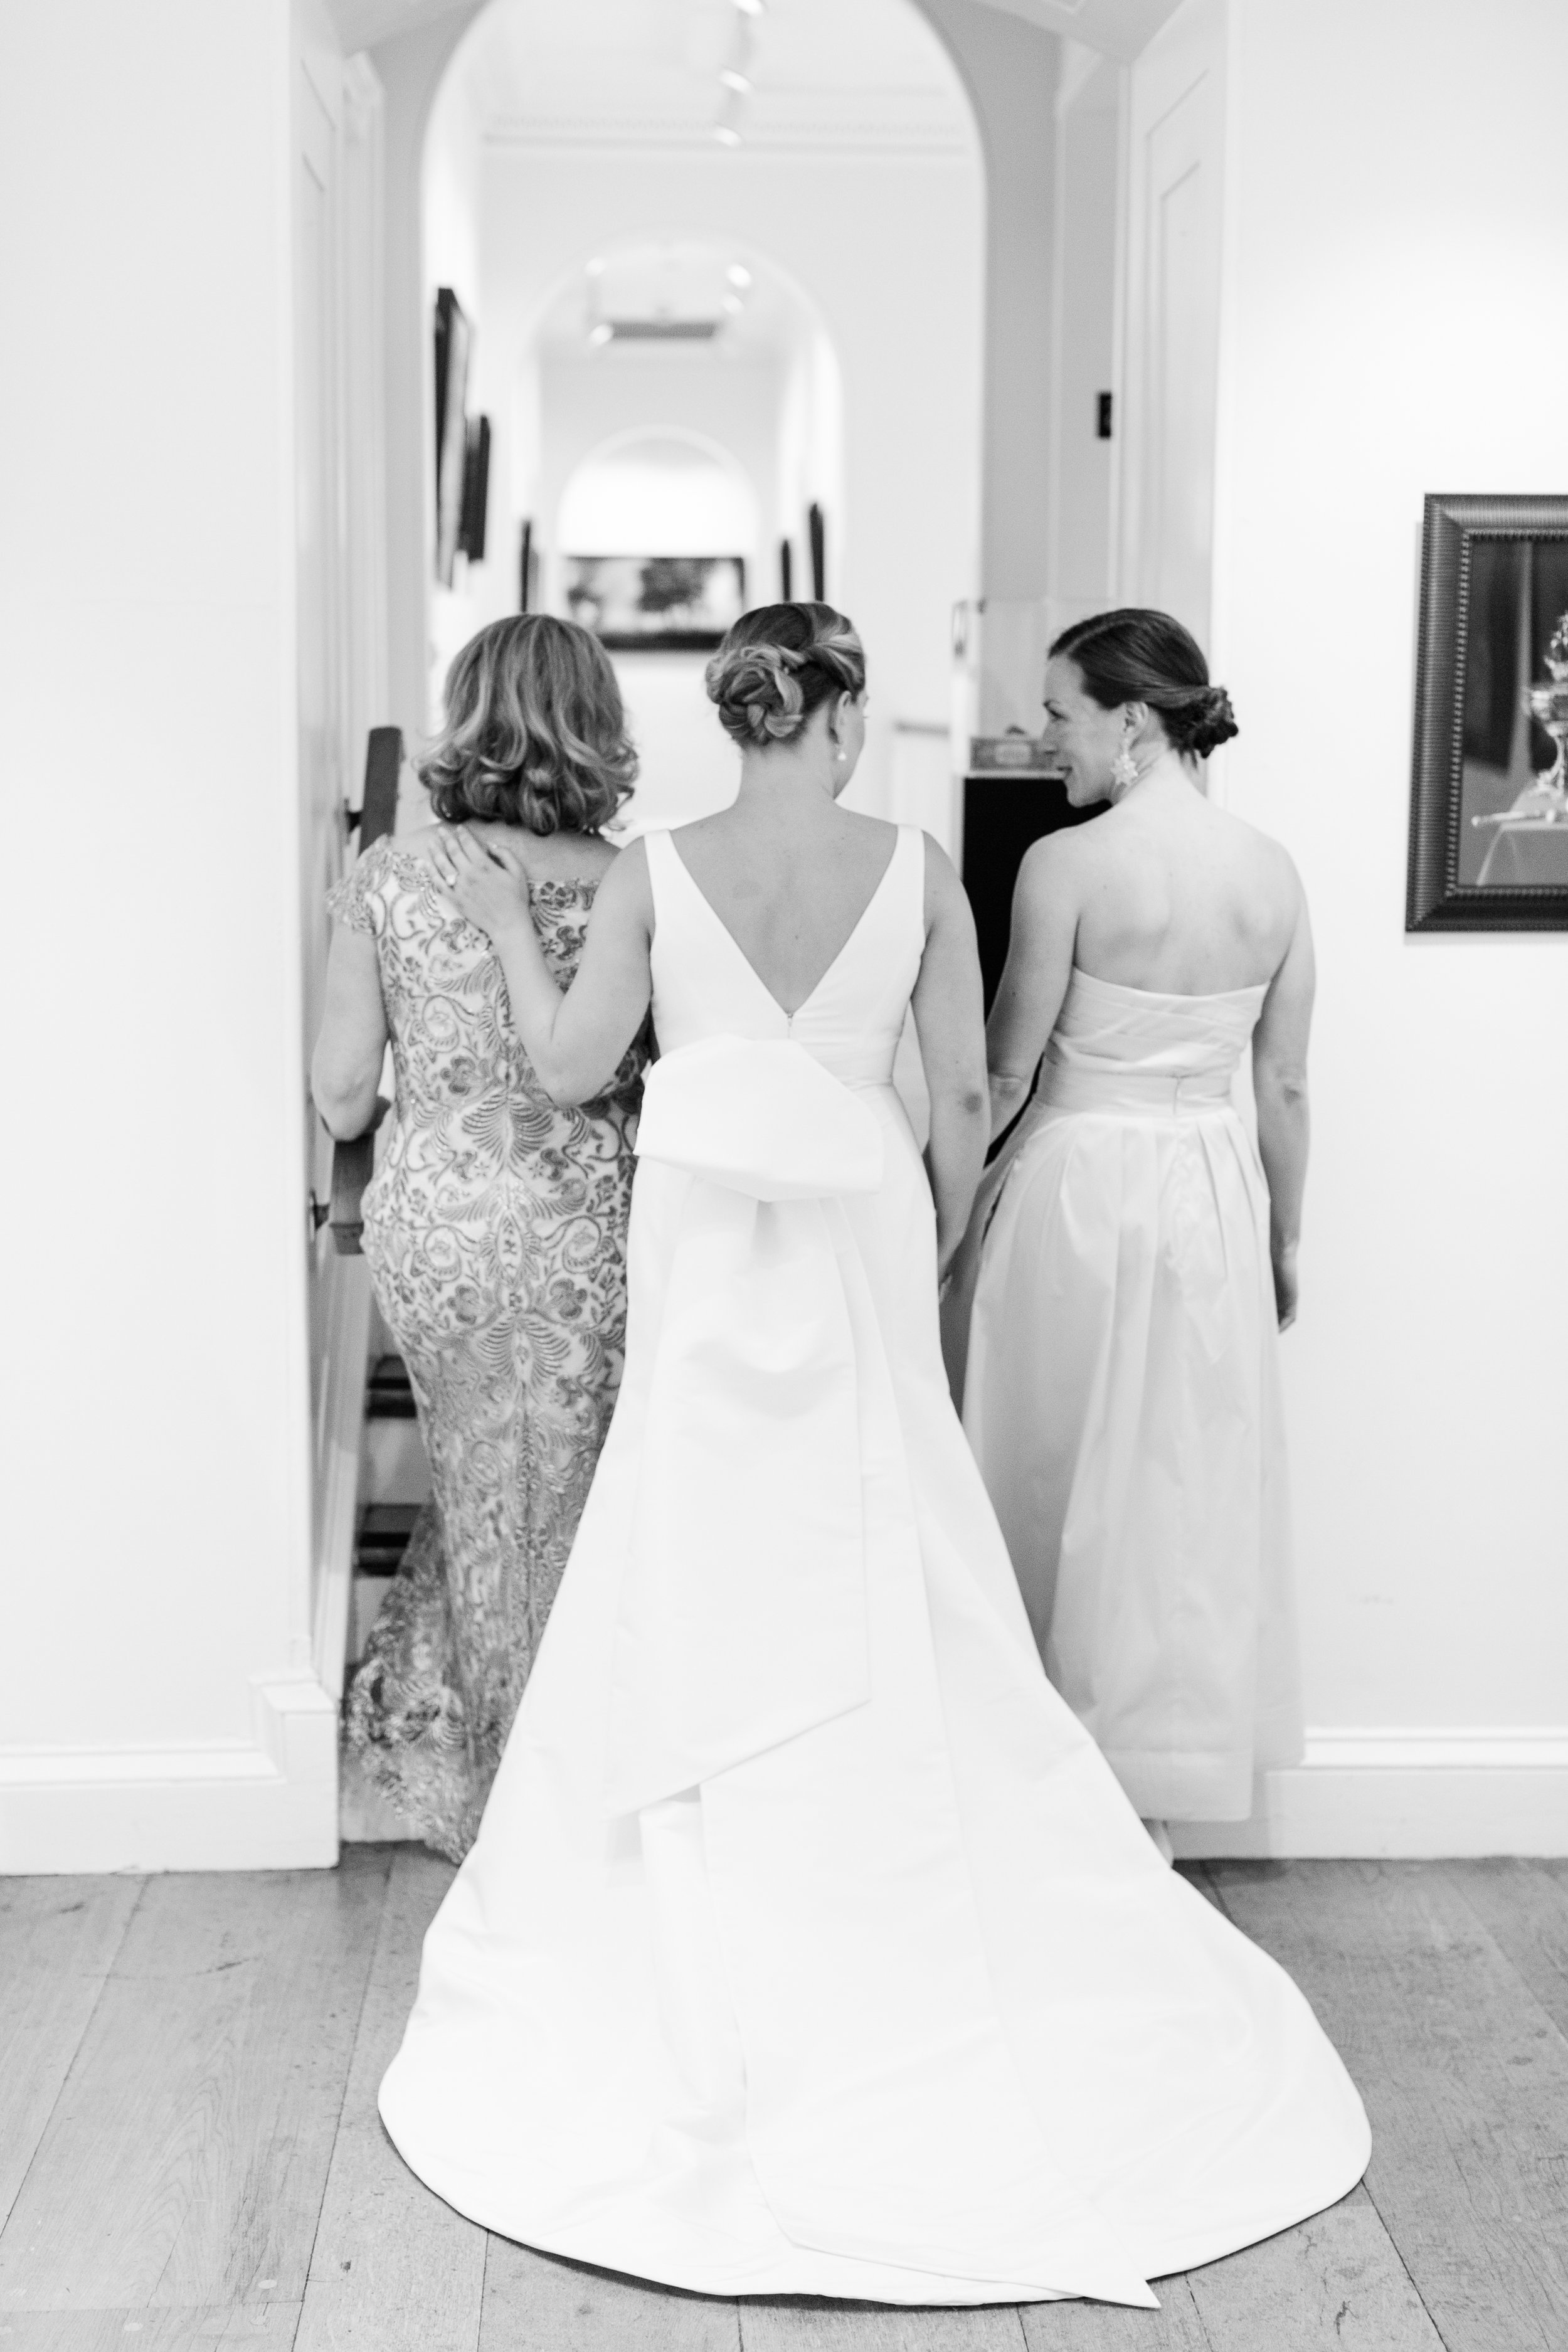 glenview-mansion-rockville-maryland-bourbon-derby-buker-wedding-getting-ready-bethanne-arthur-photography-photos-88.jpg